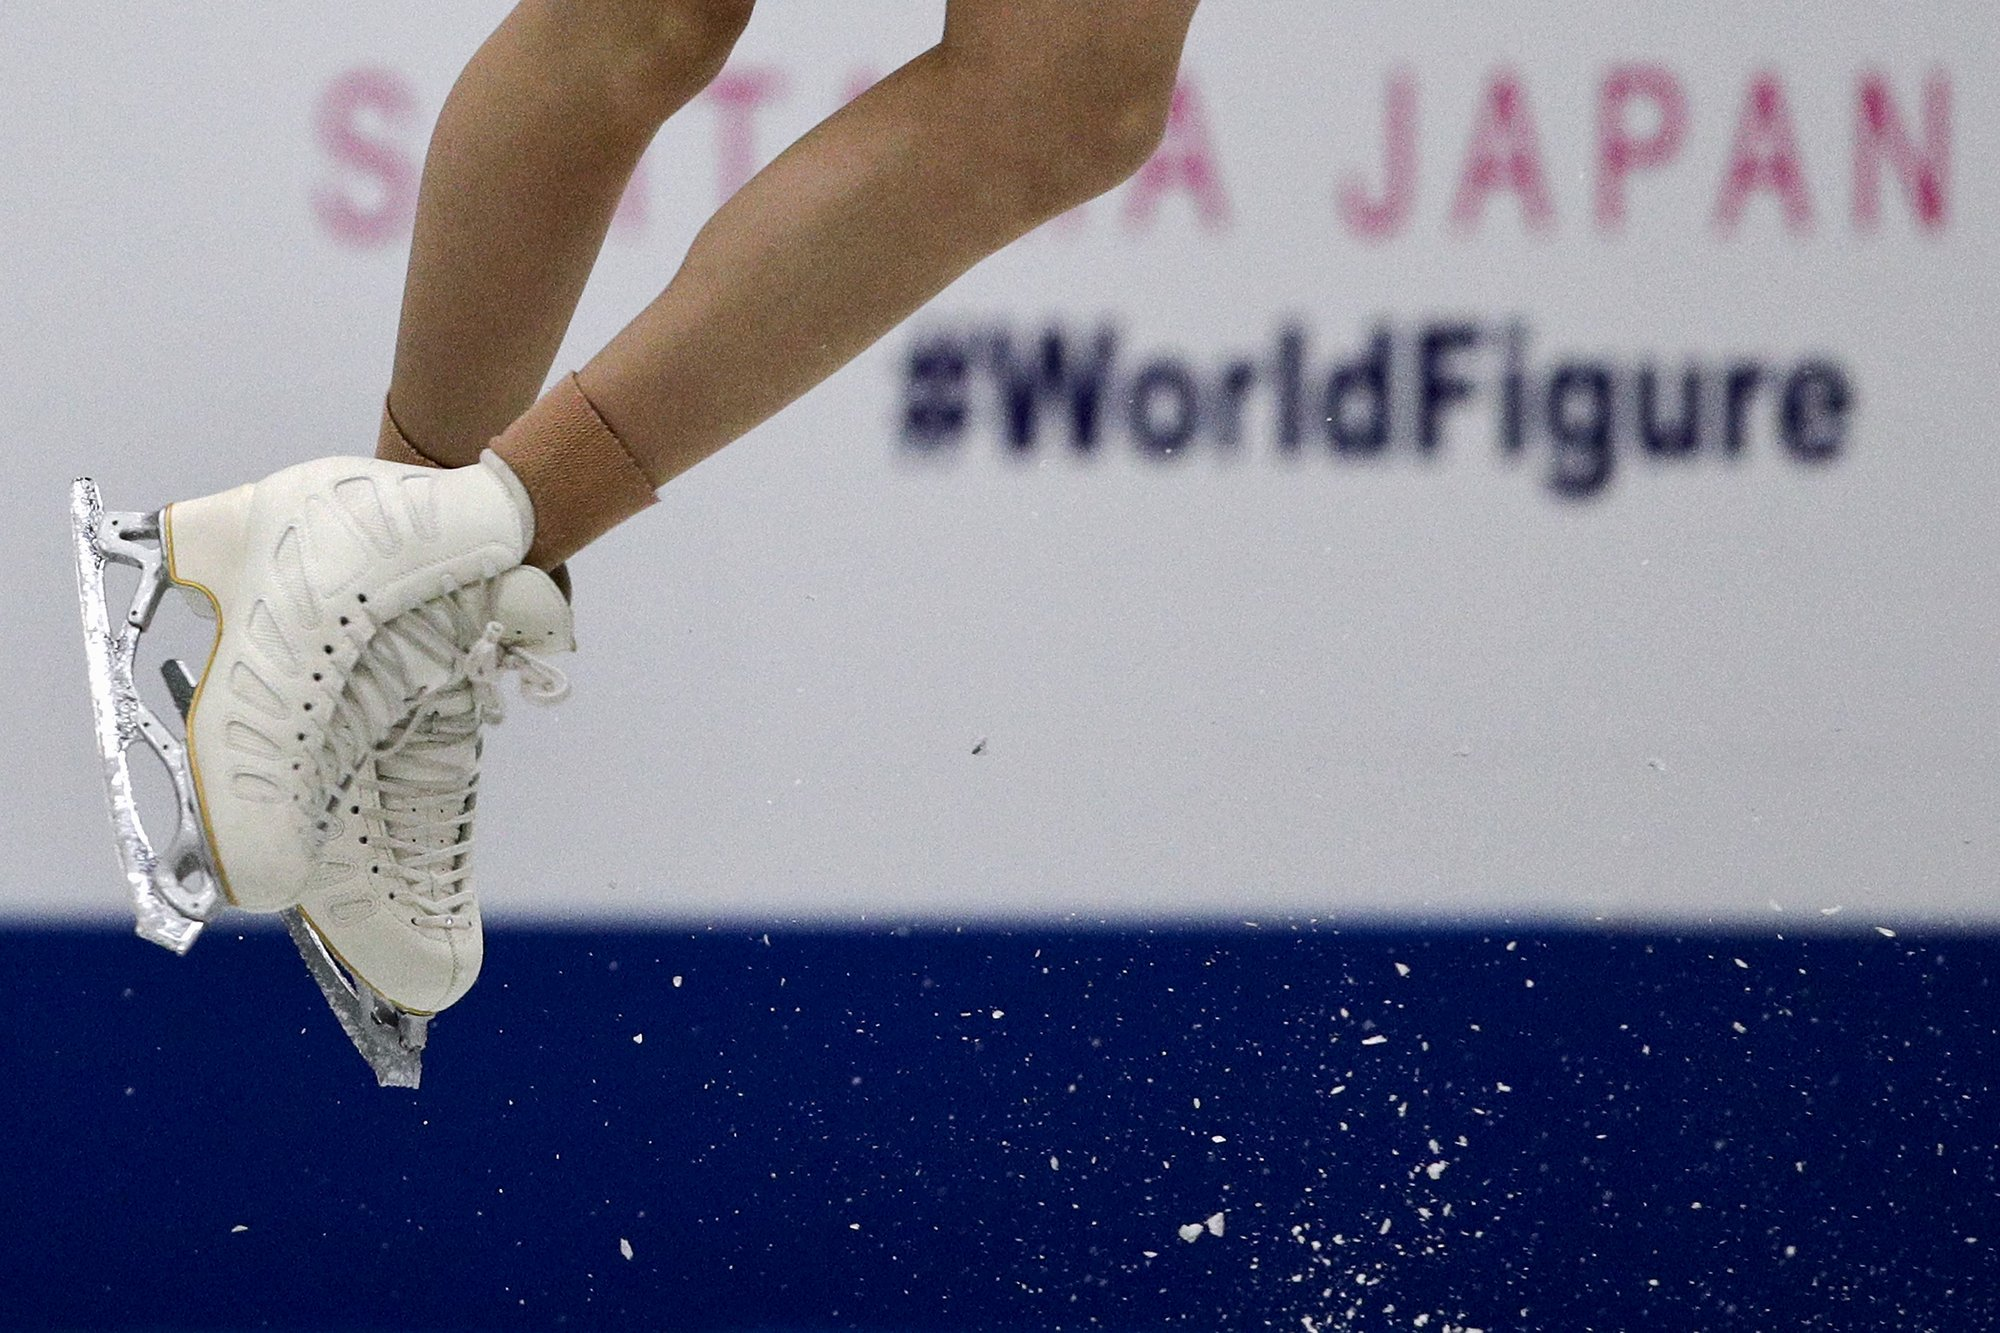 'No evidence' that American skater intended to harm rival